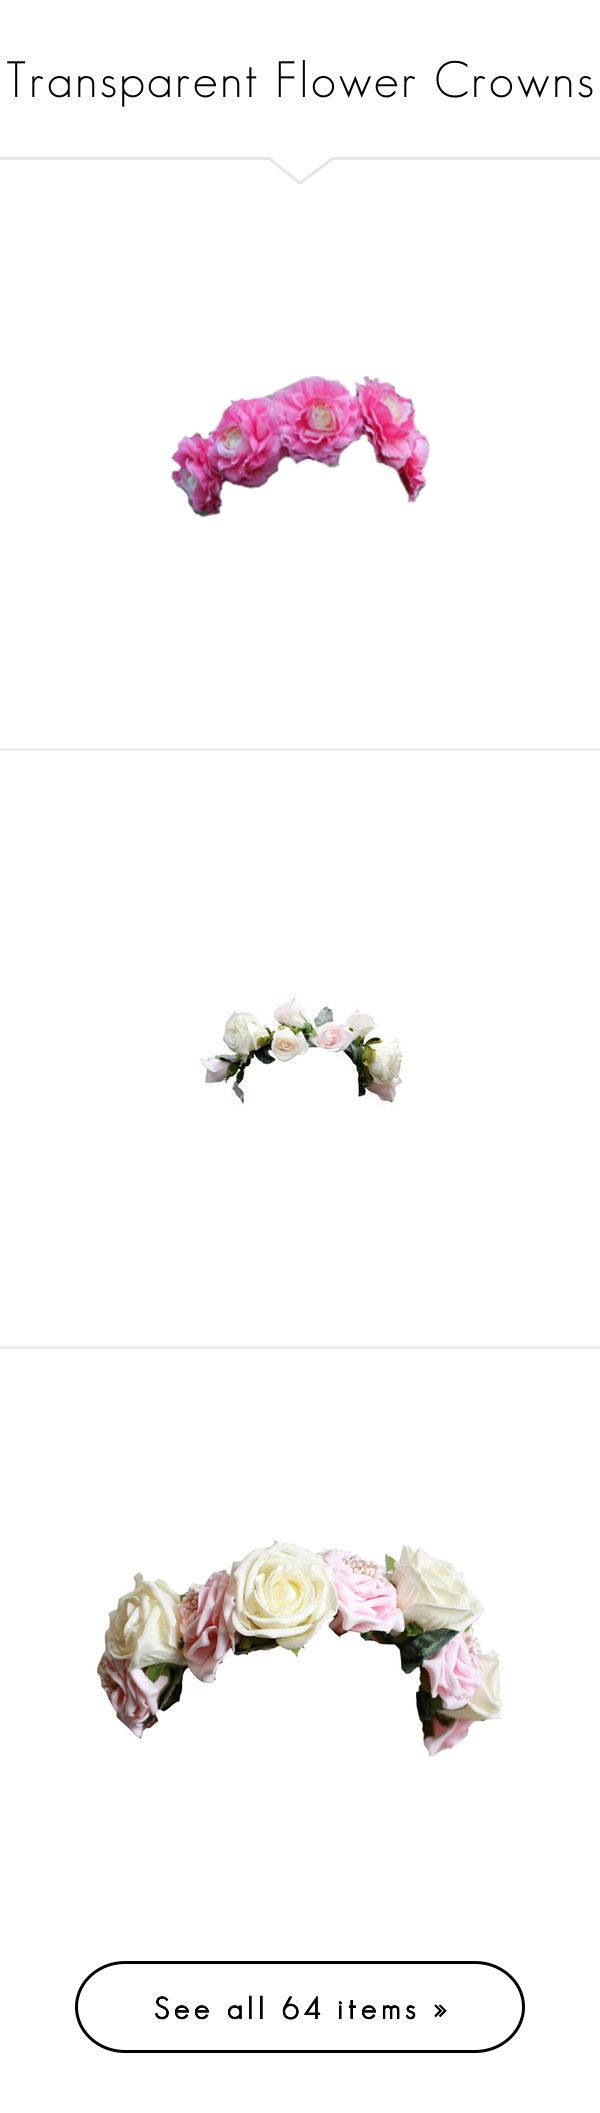 22 best flower crowns images on pinterest floral crowns flower transparent flower crowns by ashleycade23 liked on polyvore featuring accessories hair accessories izmirmasajfo